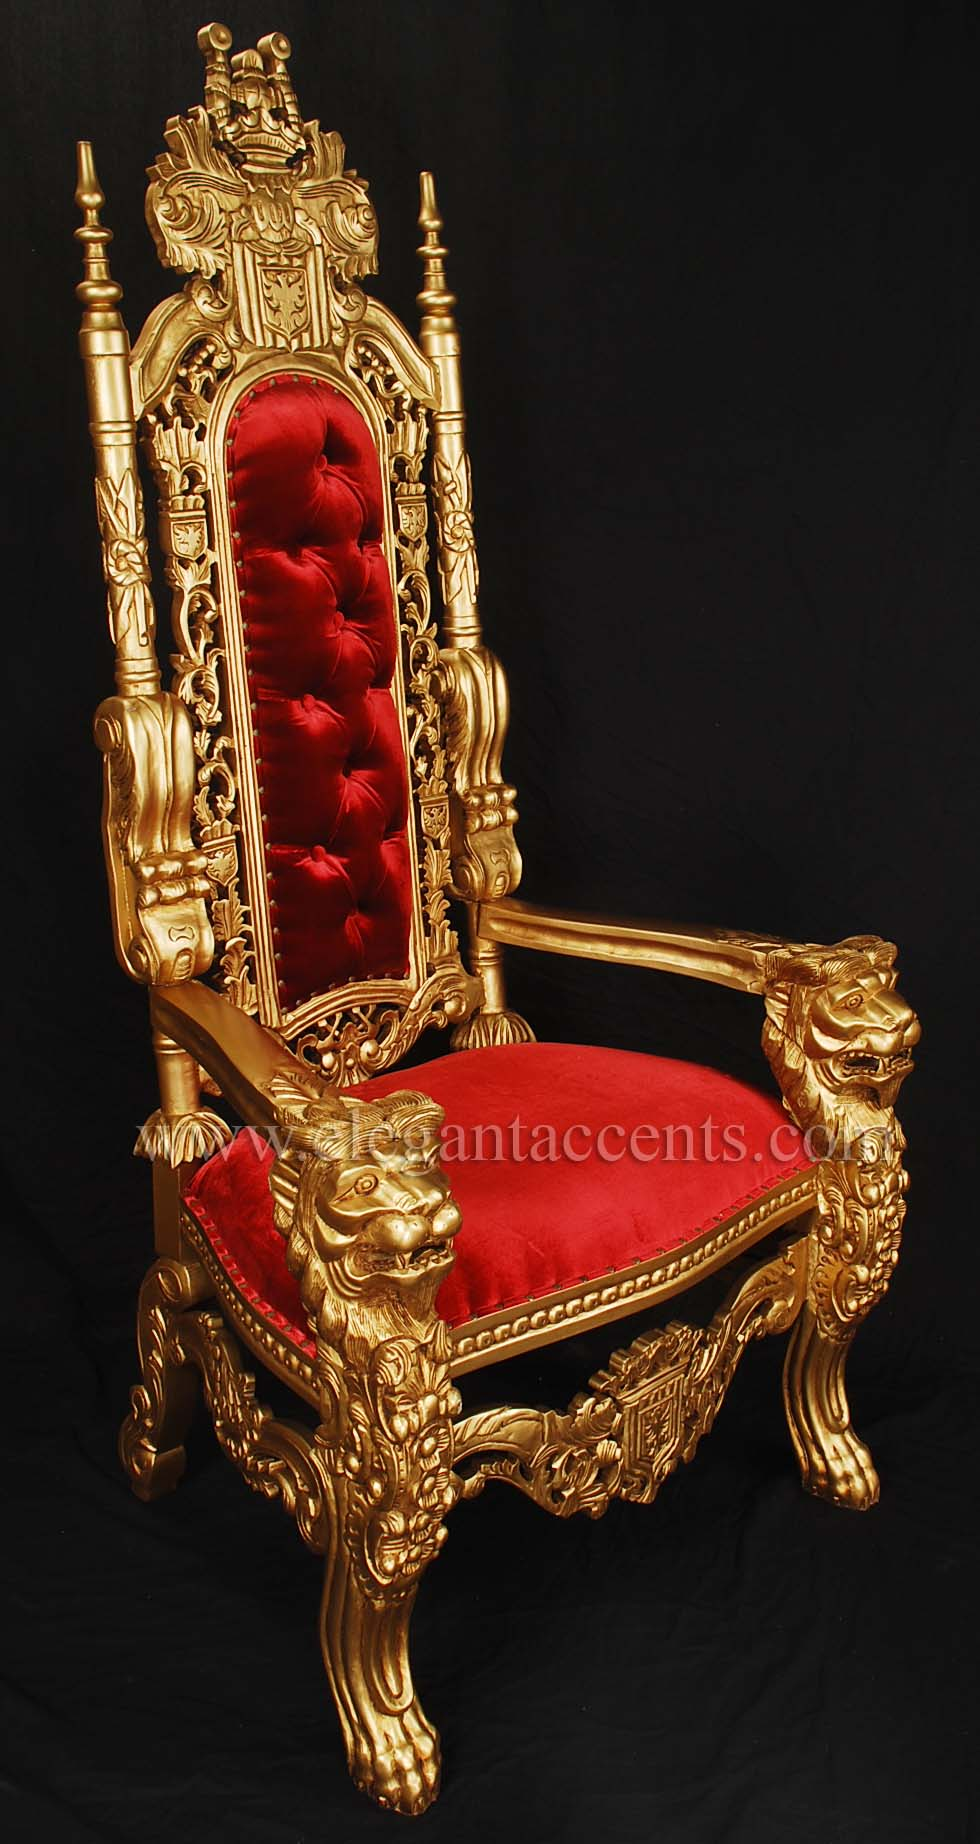 Products u0026gt; Accent Chairs u0026 Thrones u0026gt; Throne Chairs